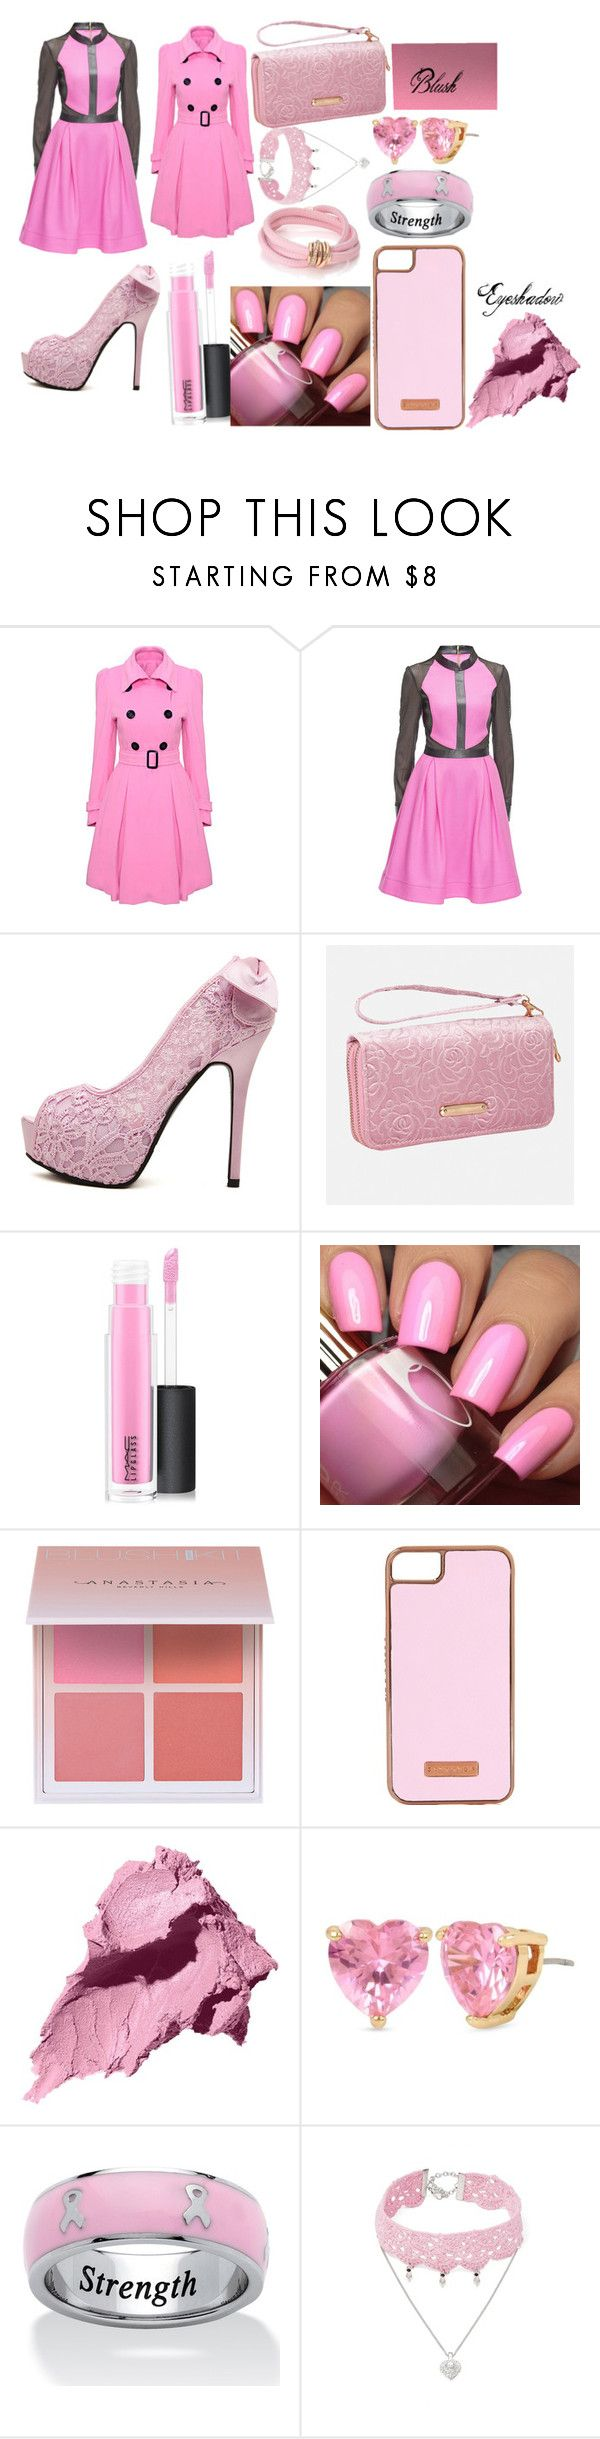 """""""Bubble Gum Pink"""" by peacetheelephant on Polyvore featuring WithChic, Lattori, Avenue, MAC Cosmetics, Anastasia Beverly Hills, Skinnydip, Bobbi Brown Cosmetics, Betsey Johnson, Palm Beach Jewelry and Design Lab"""